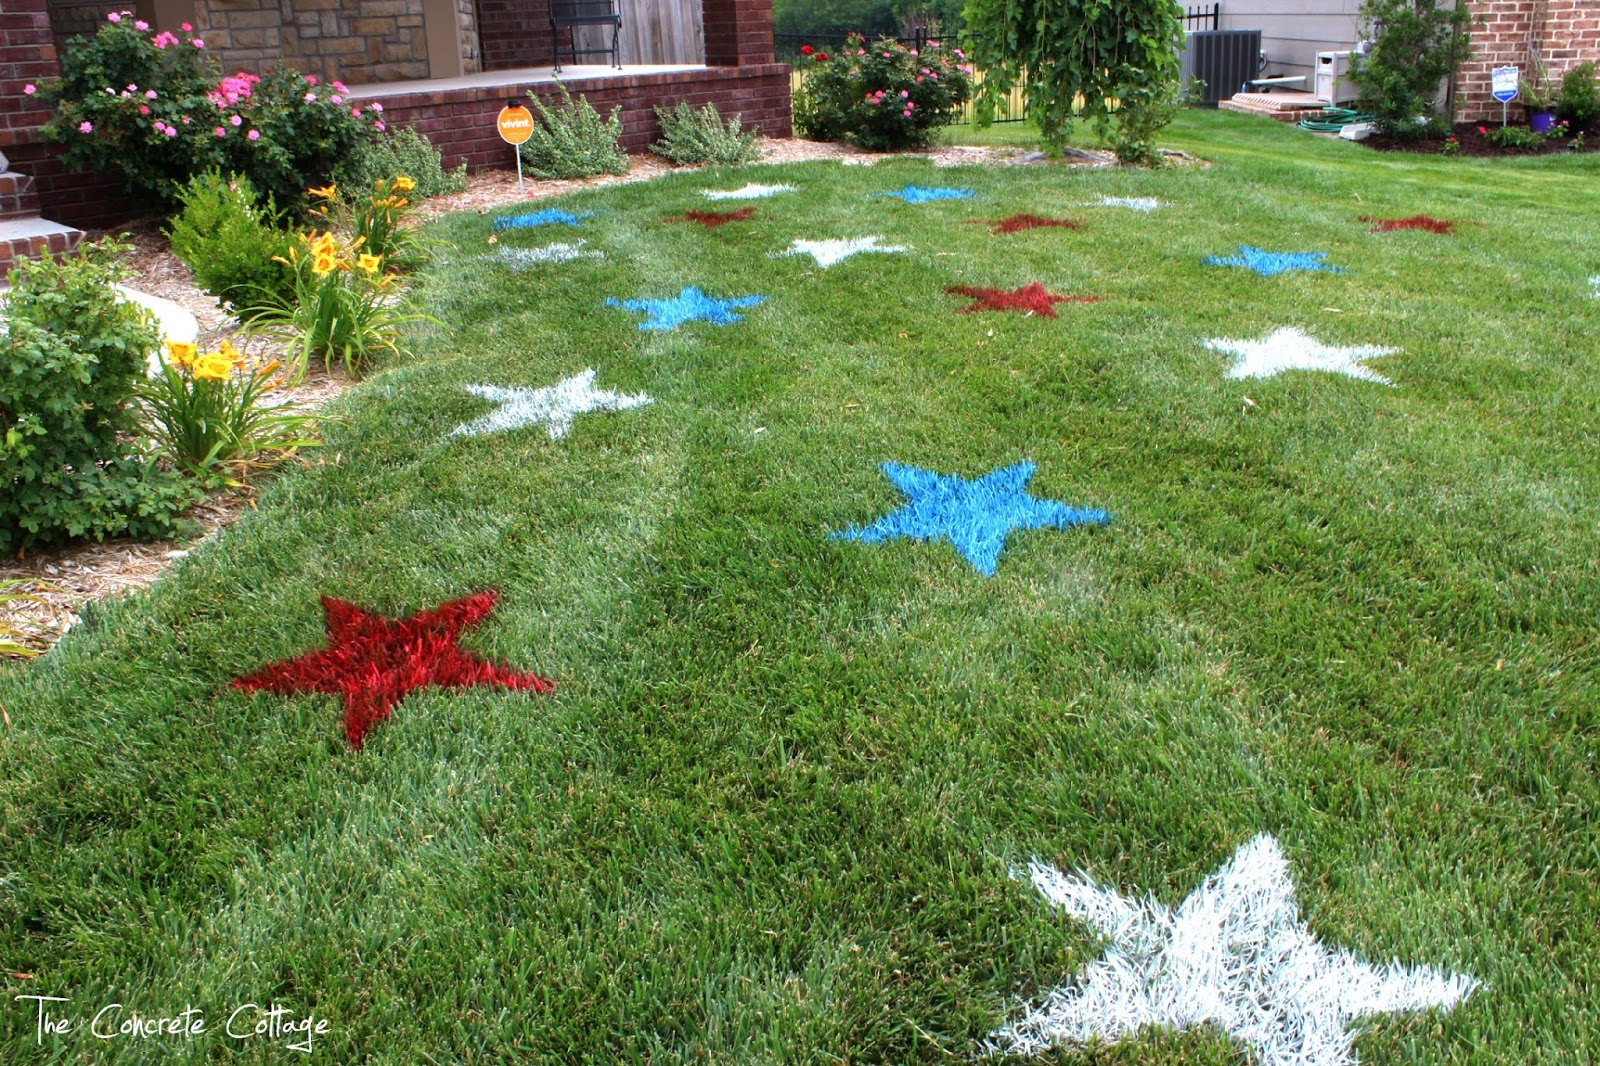 Star-Spangled Lawn | Patriotic 4th Of July Party Ideas You Can DIY On A Budget